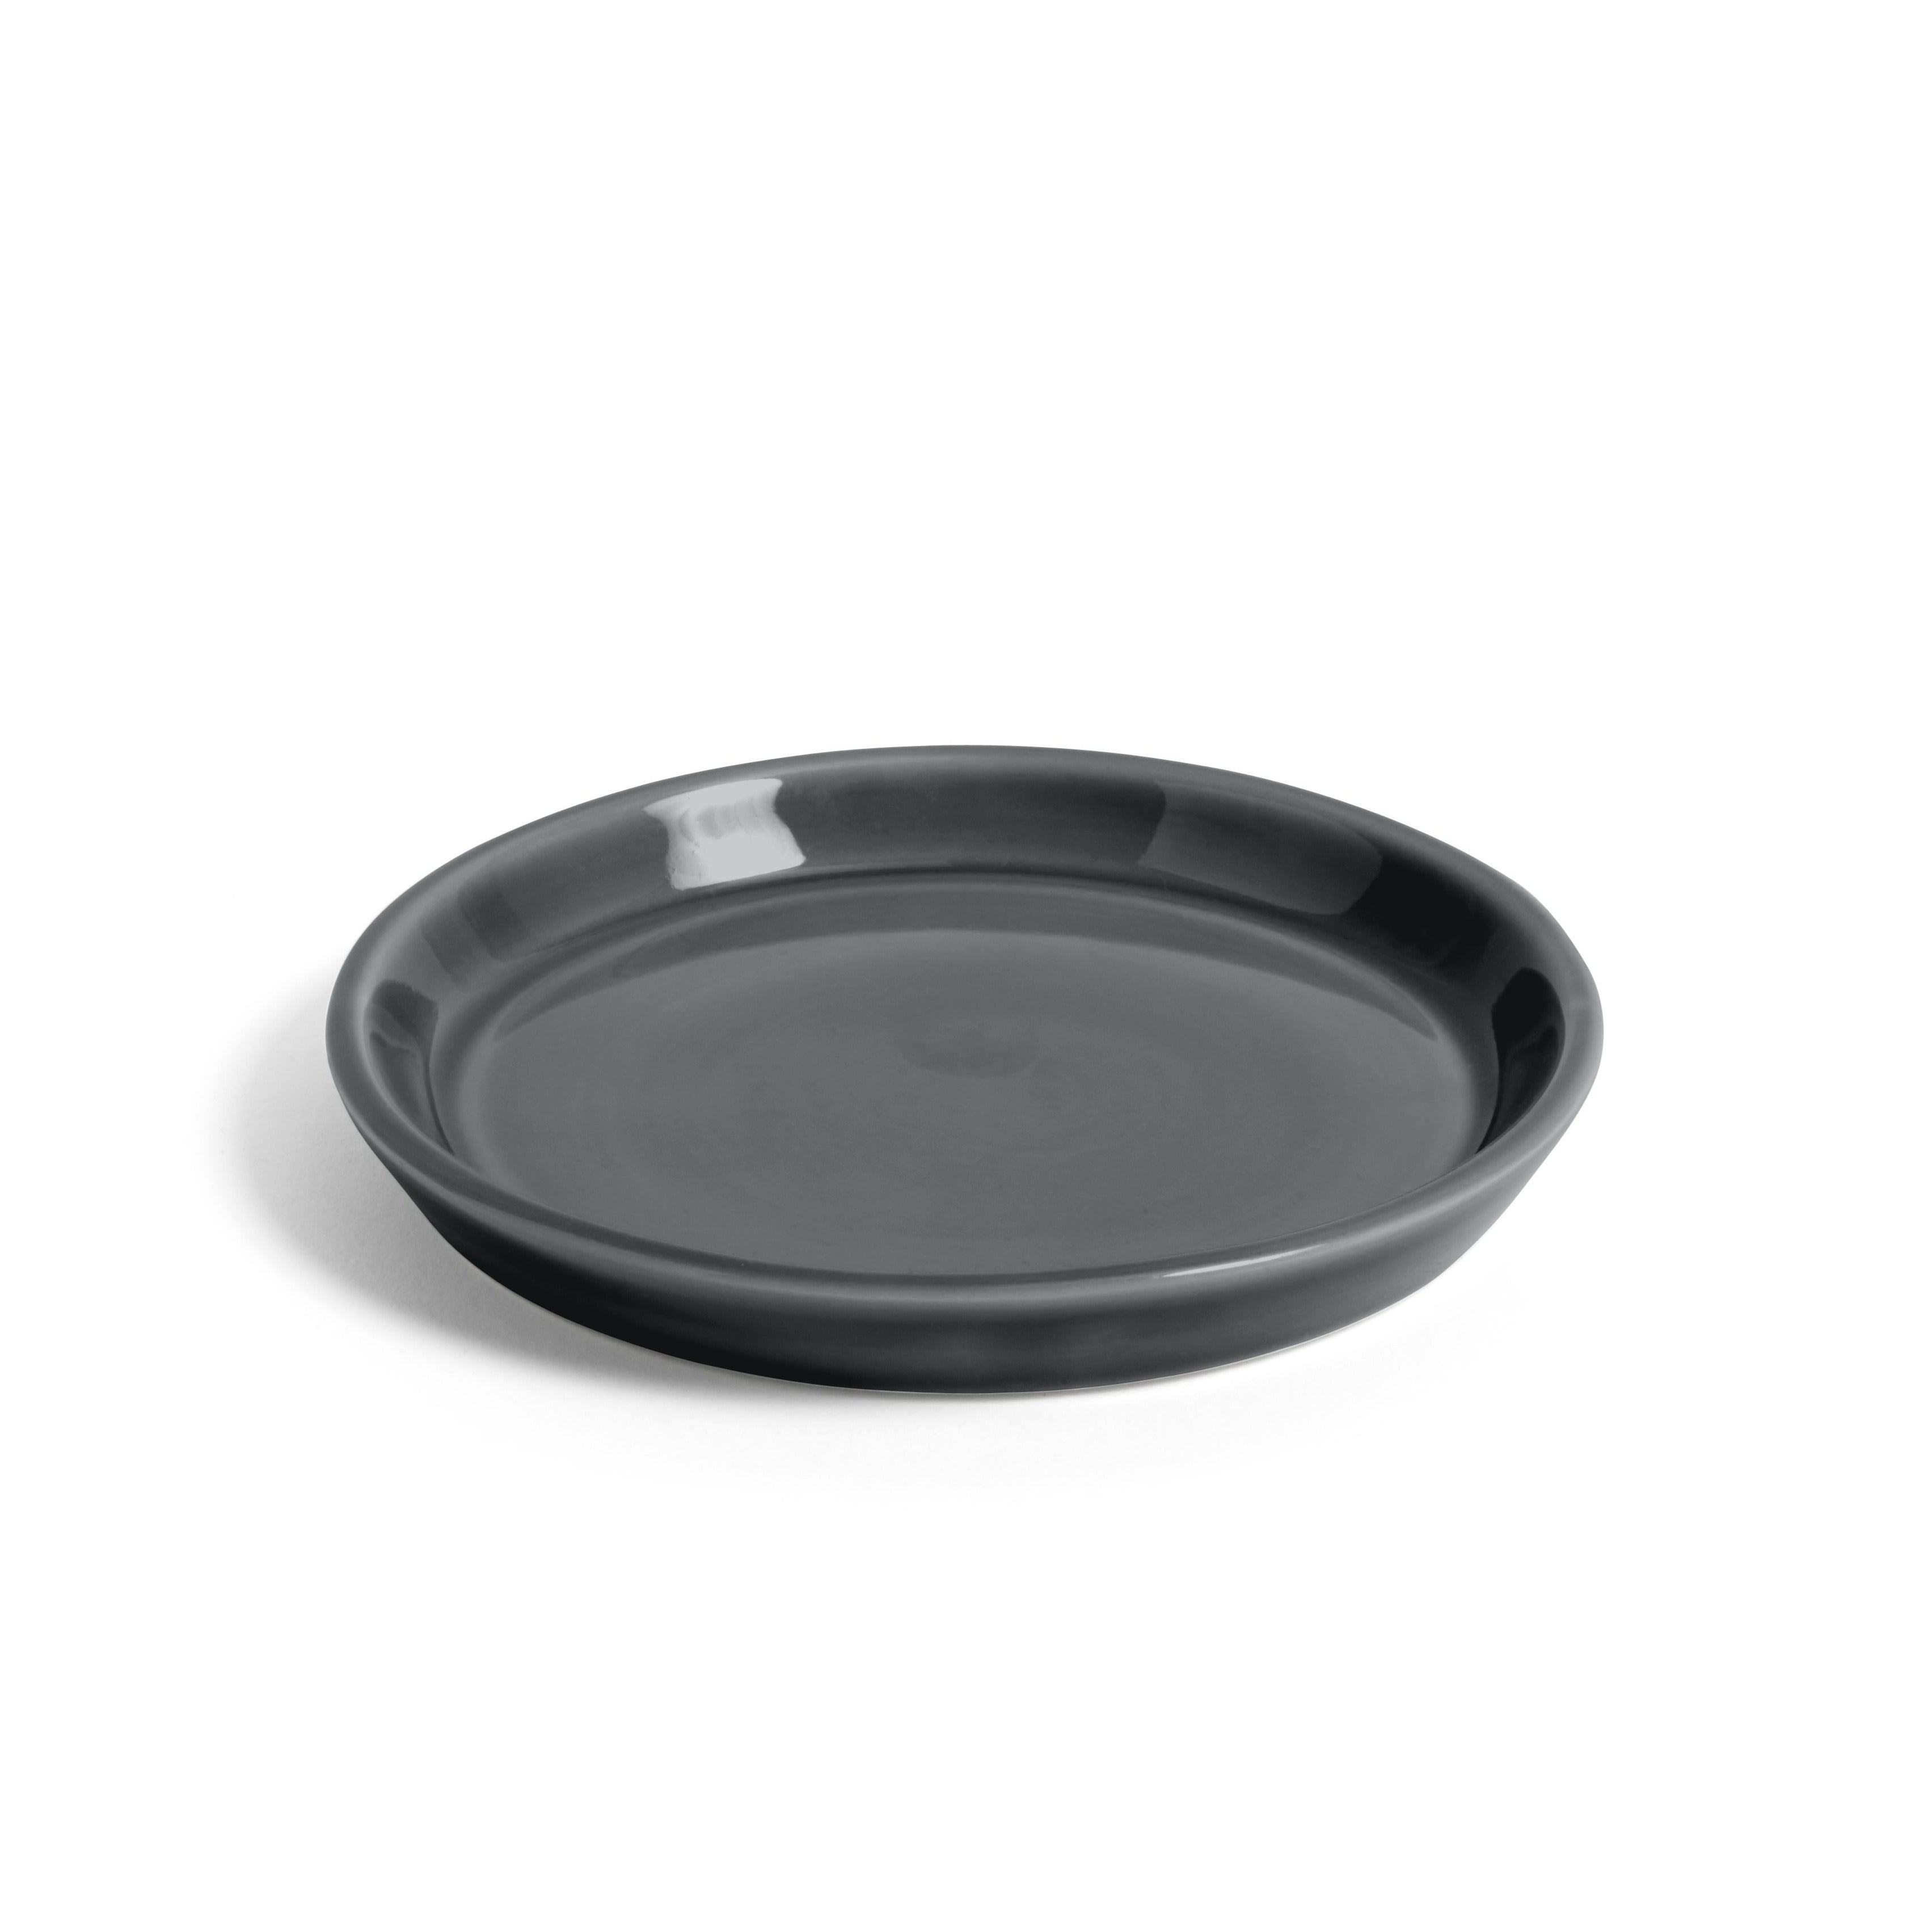 Medium Anthracite Botanical Saucer